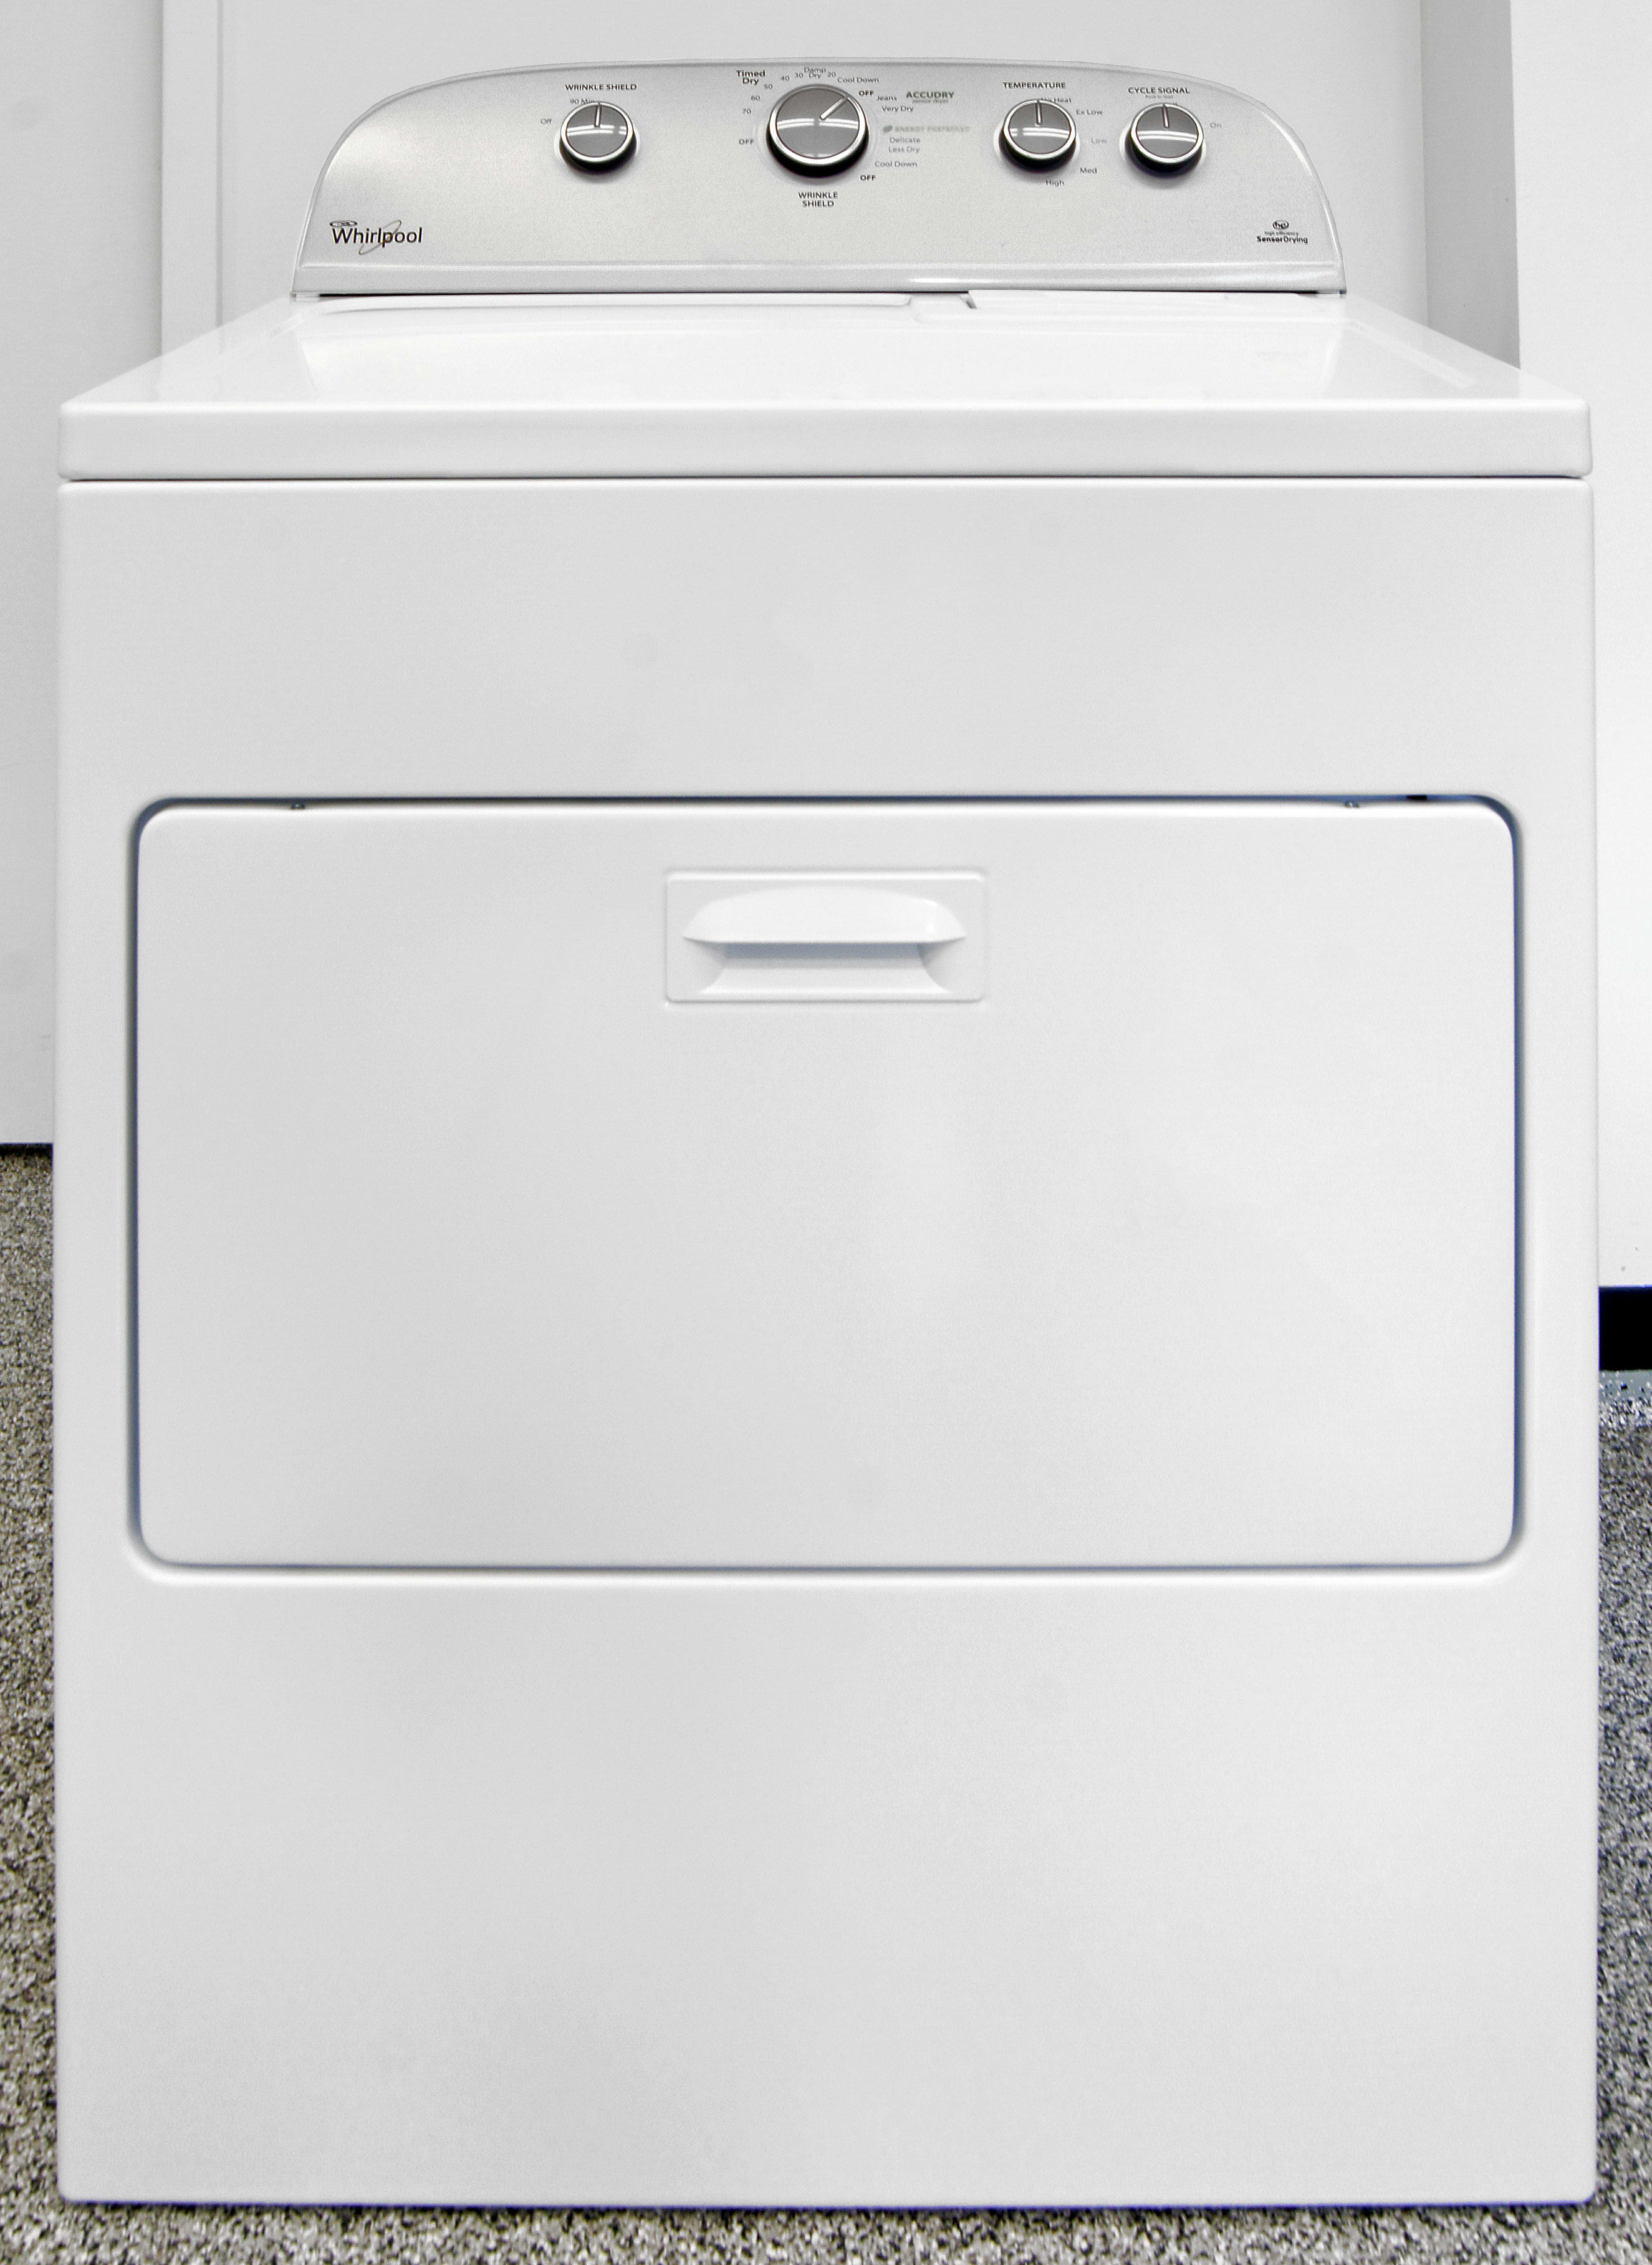 Whirlpool Wed4915ew Dryer Review Laundry Senseon Wiring Diagram The Wed5000ew Is An Old School White And Grey Hamper Door